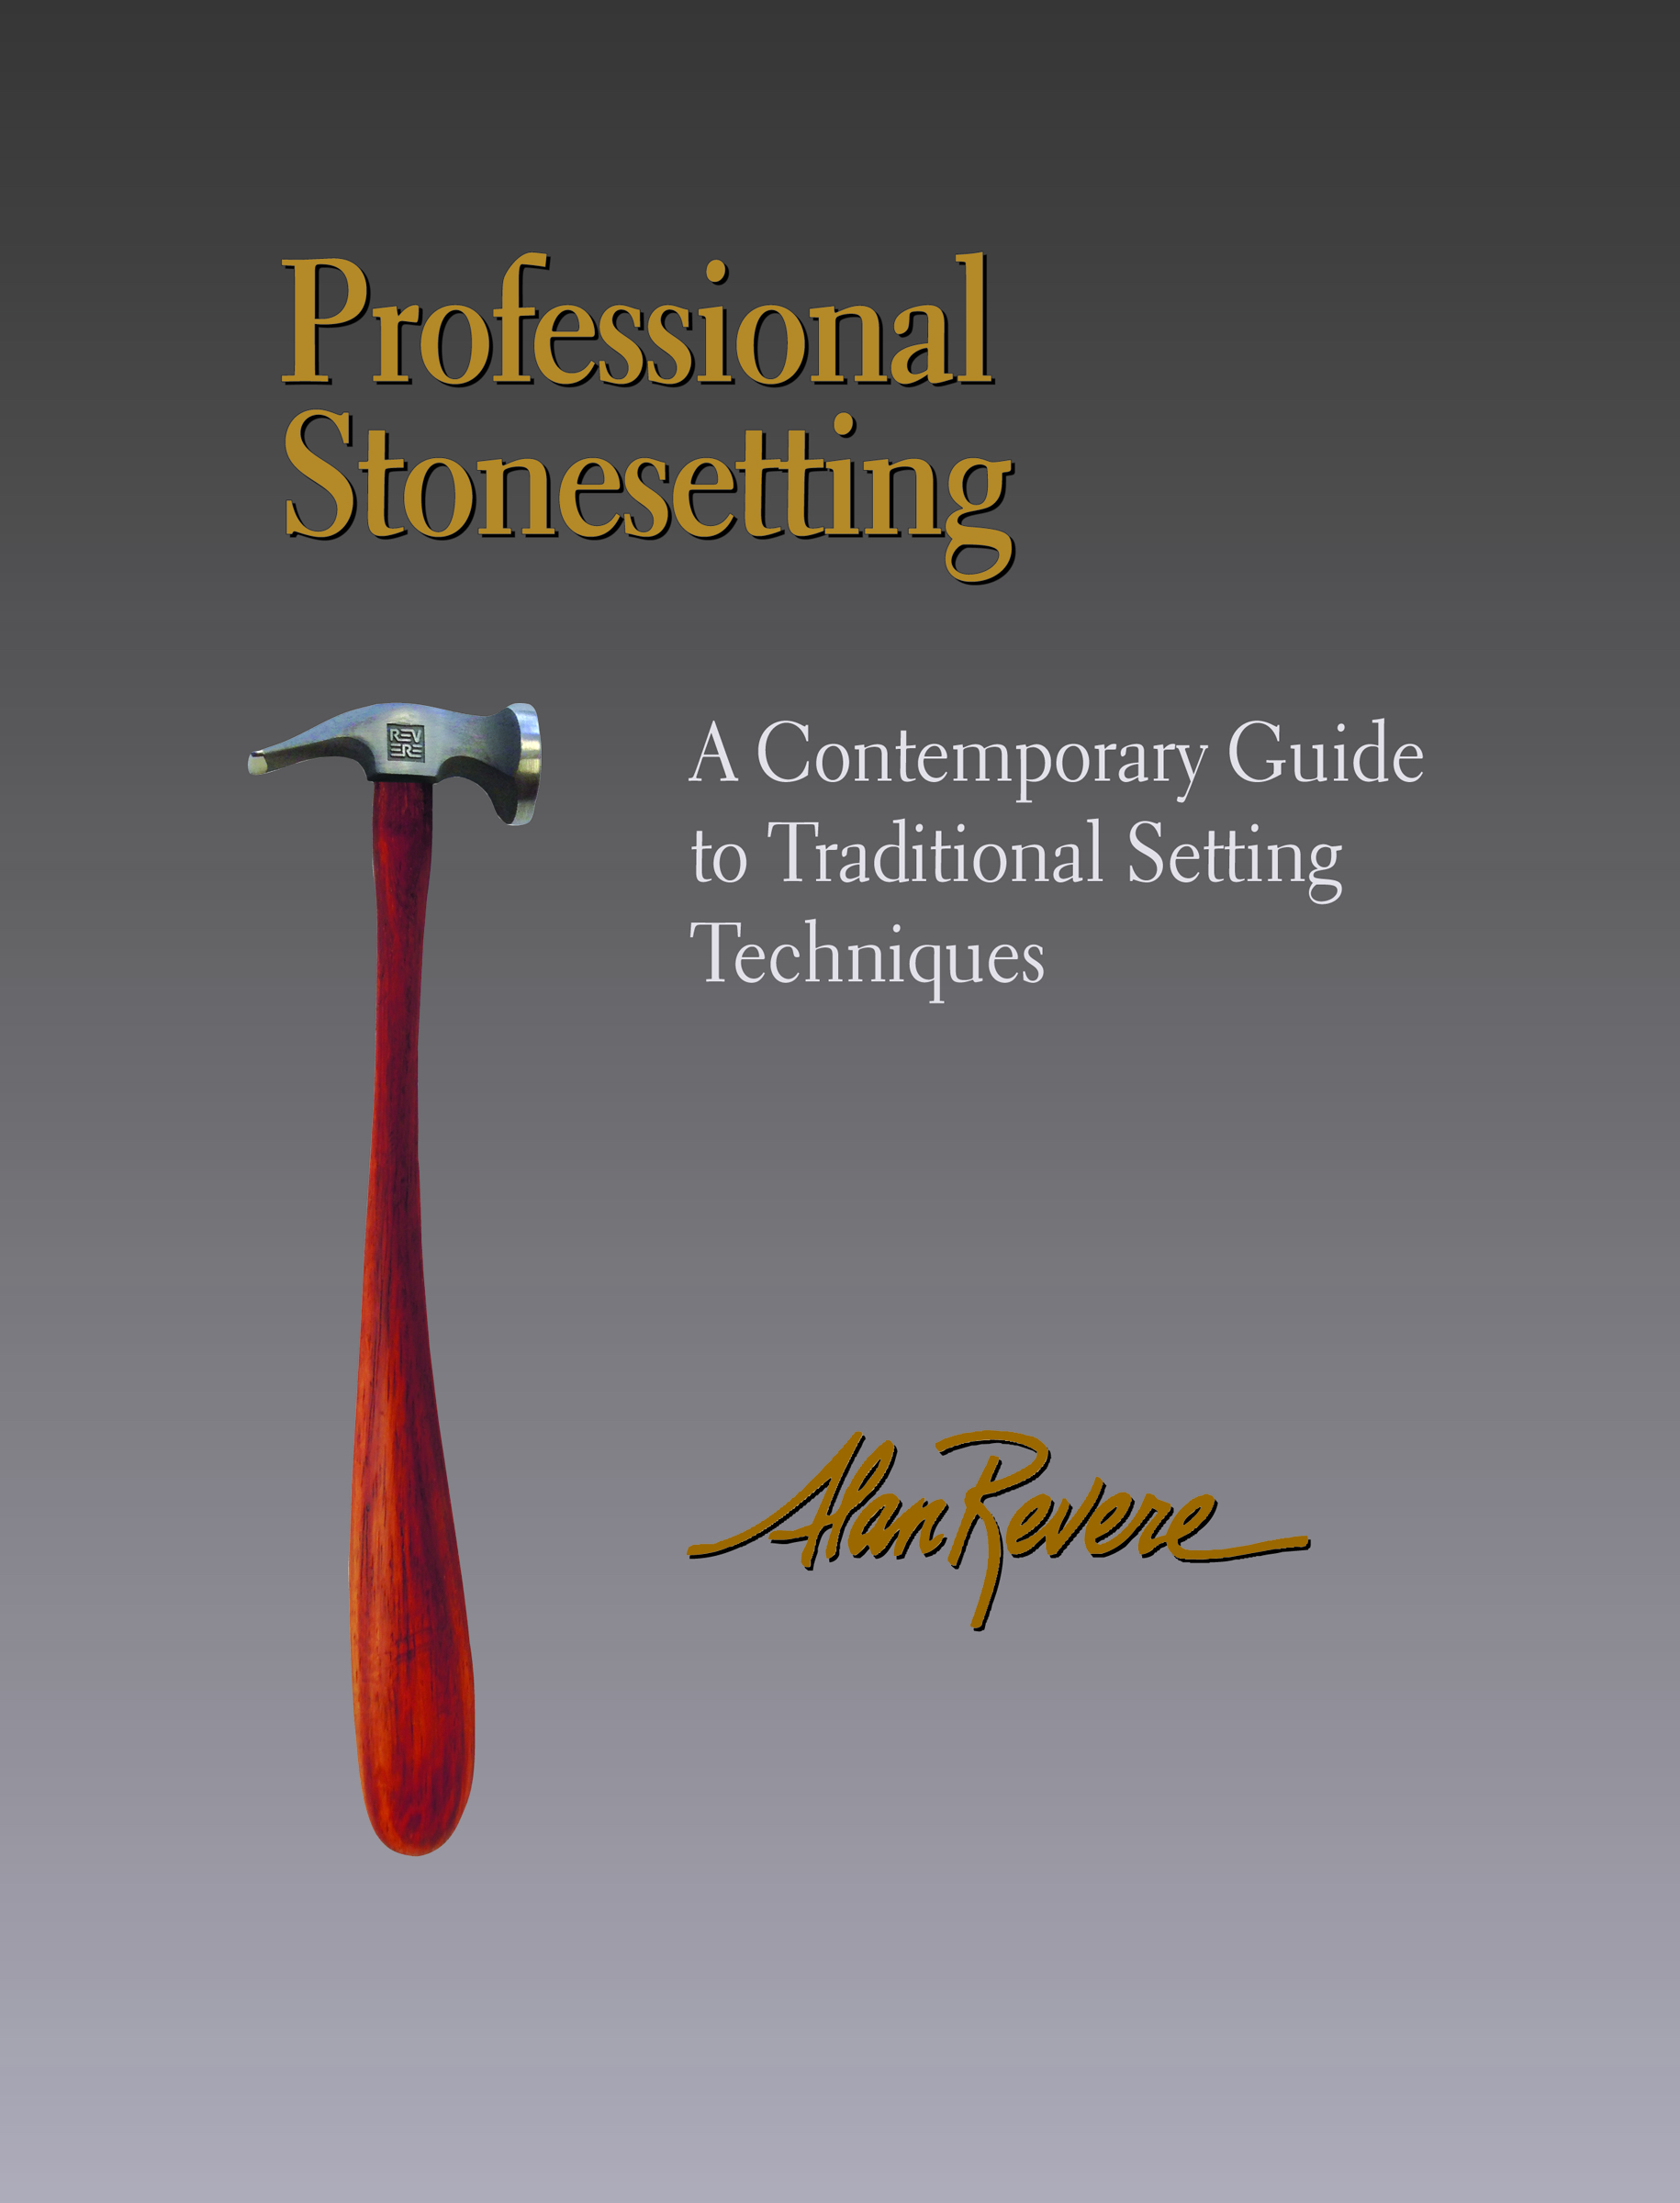 Most Recent Release byAlan Revere! - Professional Stonesetting by Alan RevereDownload a review by Helen Driggs for Lapidary Journal